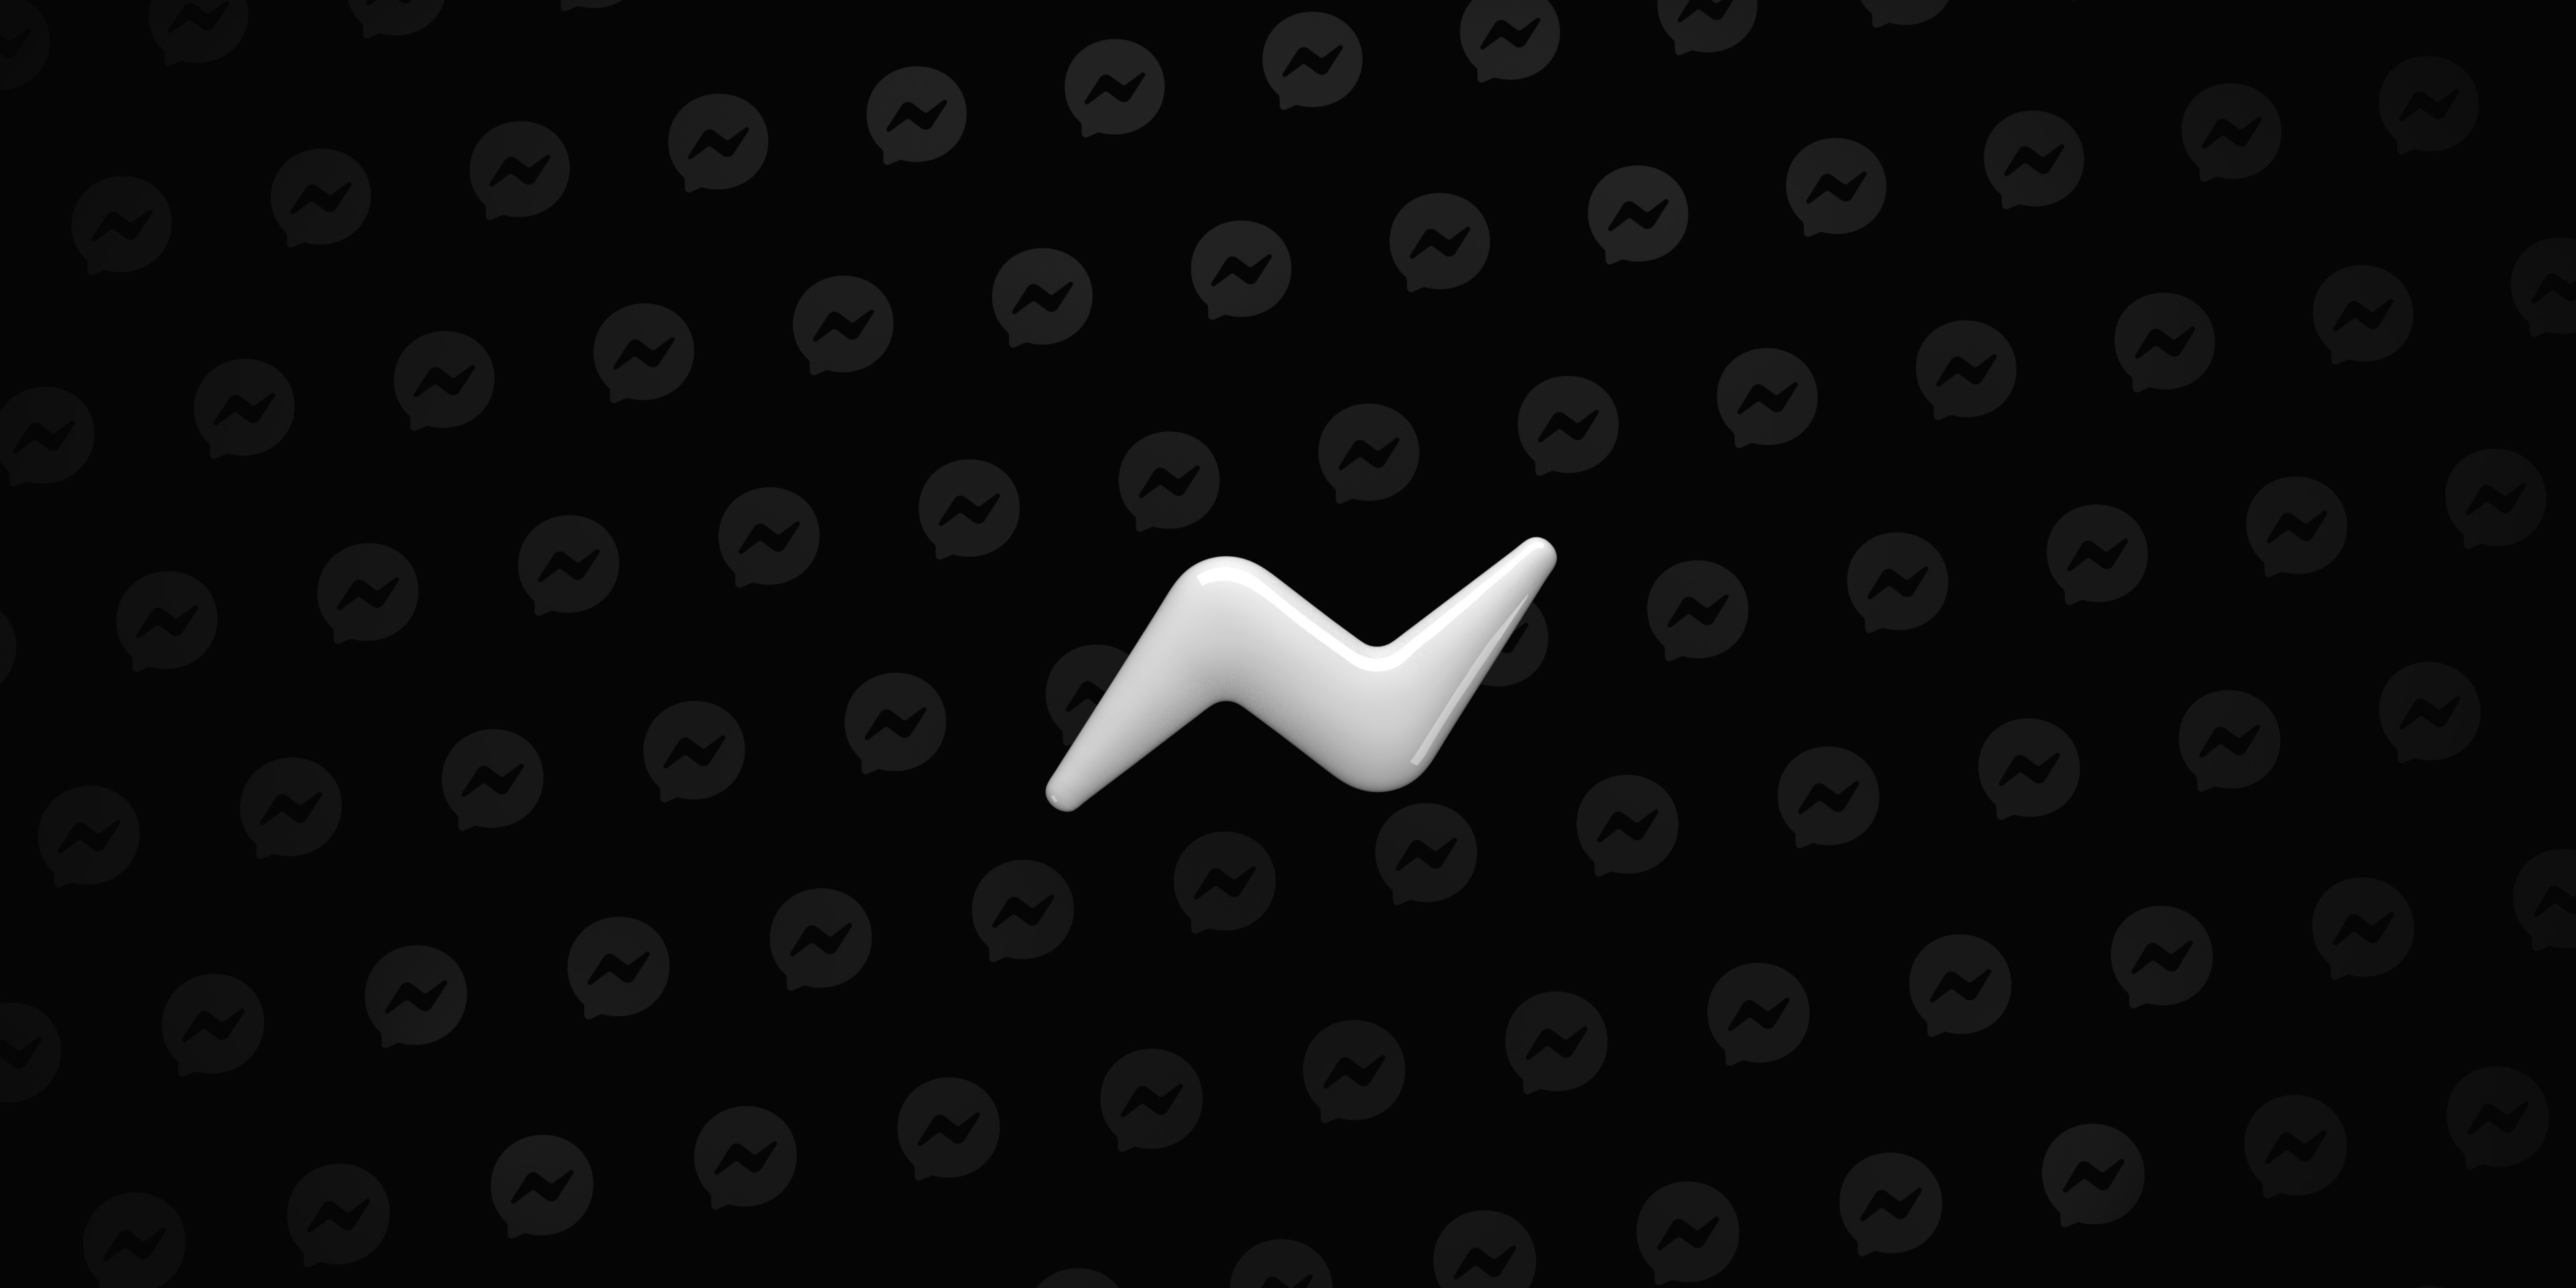 Facebook Messenger's Dark Mode setting on iOS now rolling out to everyone